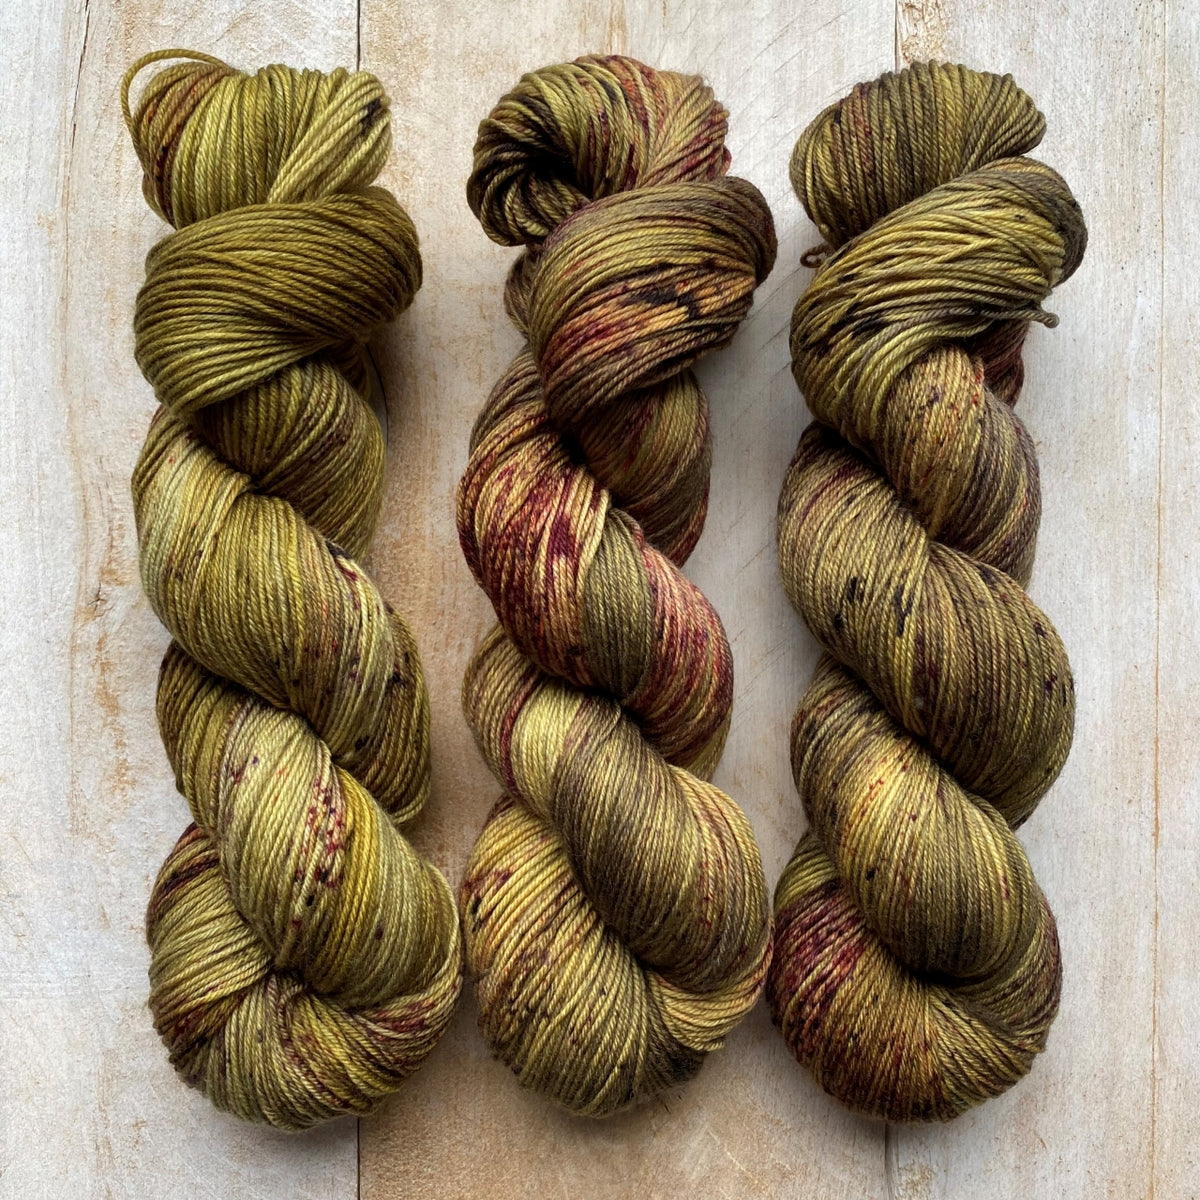 Bis-Sock OLIVINE | hand-dyed Speckled sock yarn | 100g (2x50g) / 50g (mini skein)